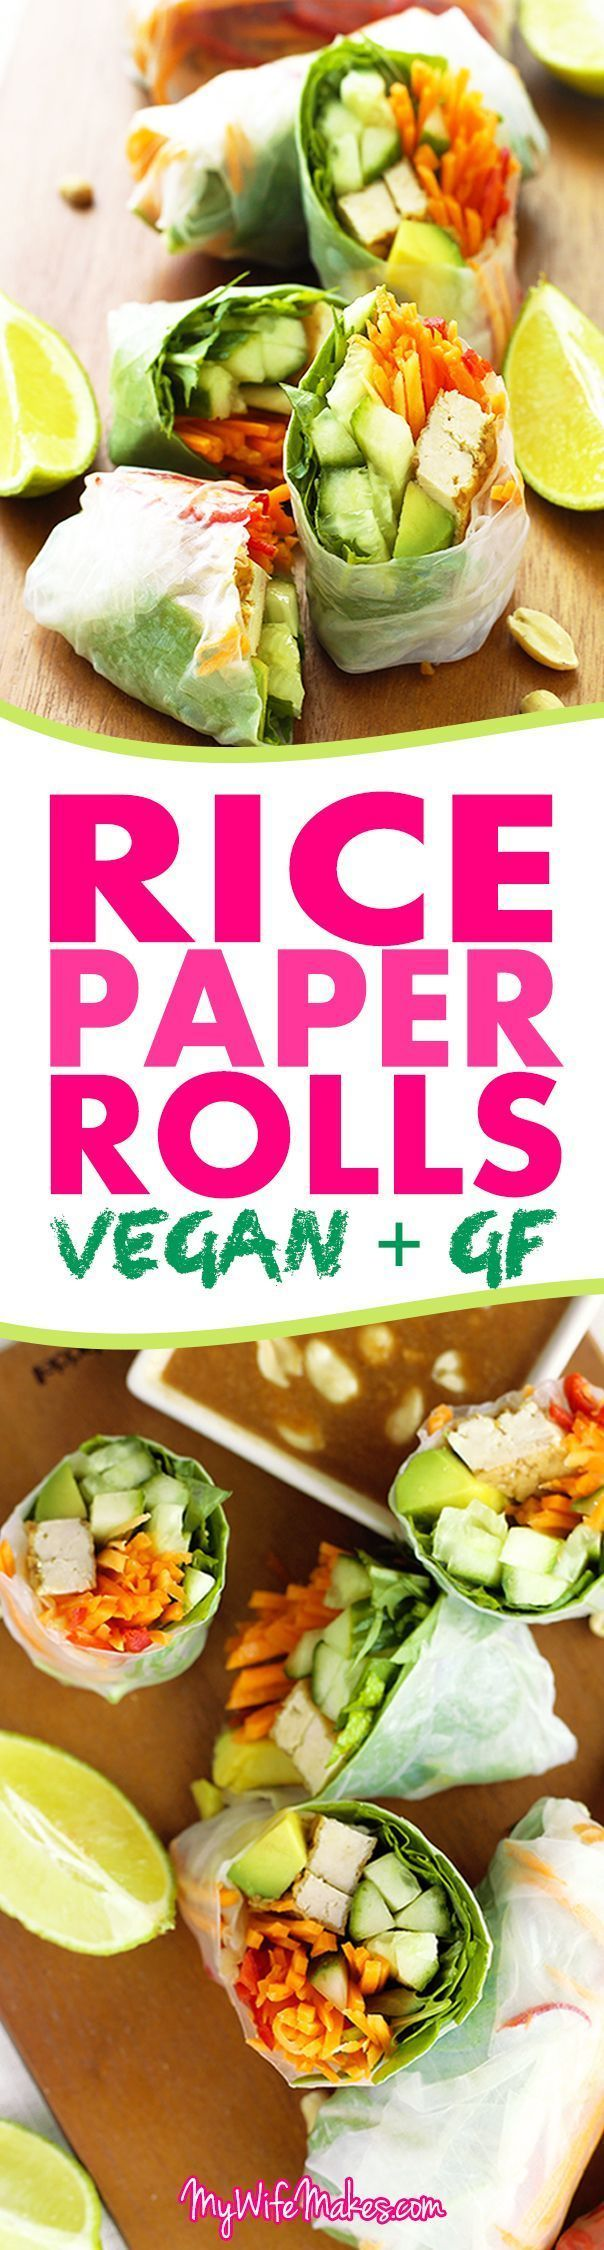 Easy lunch recipe for Vegan Rice Paper Rolls with Hoisin Peanut Dipping Sauce. F